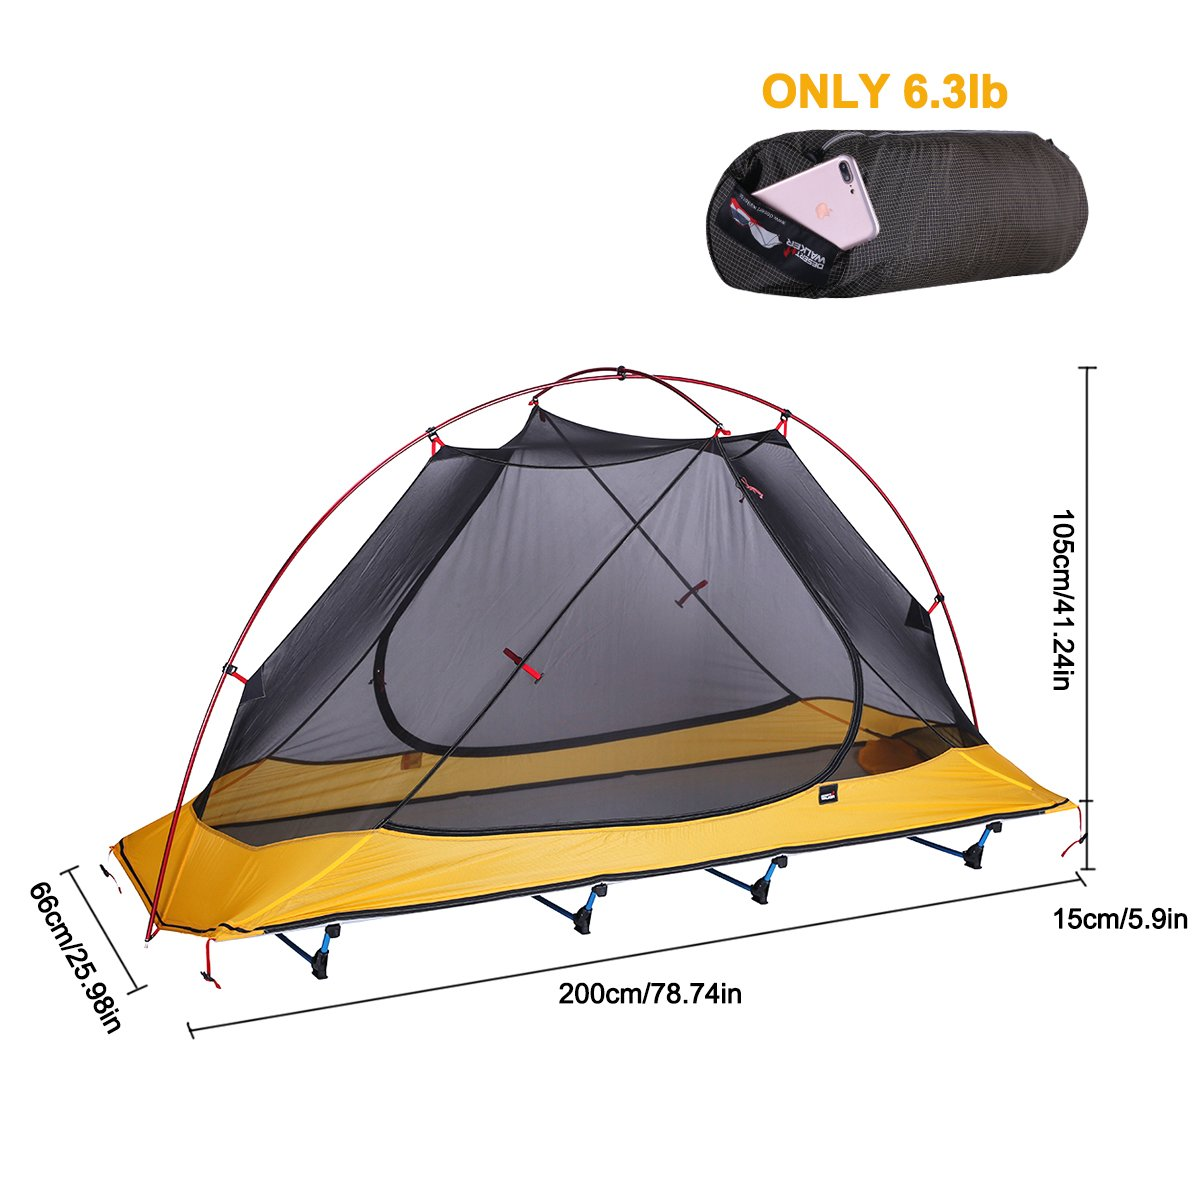 Uboway Ultralight Camping Tent Cot Off Ground Tent with Carrying Bag for Camping, Hiking, Adventure Trip